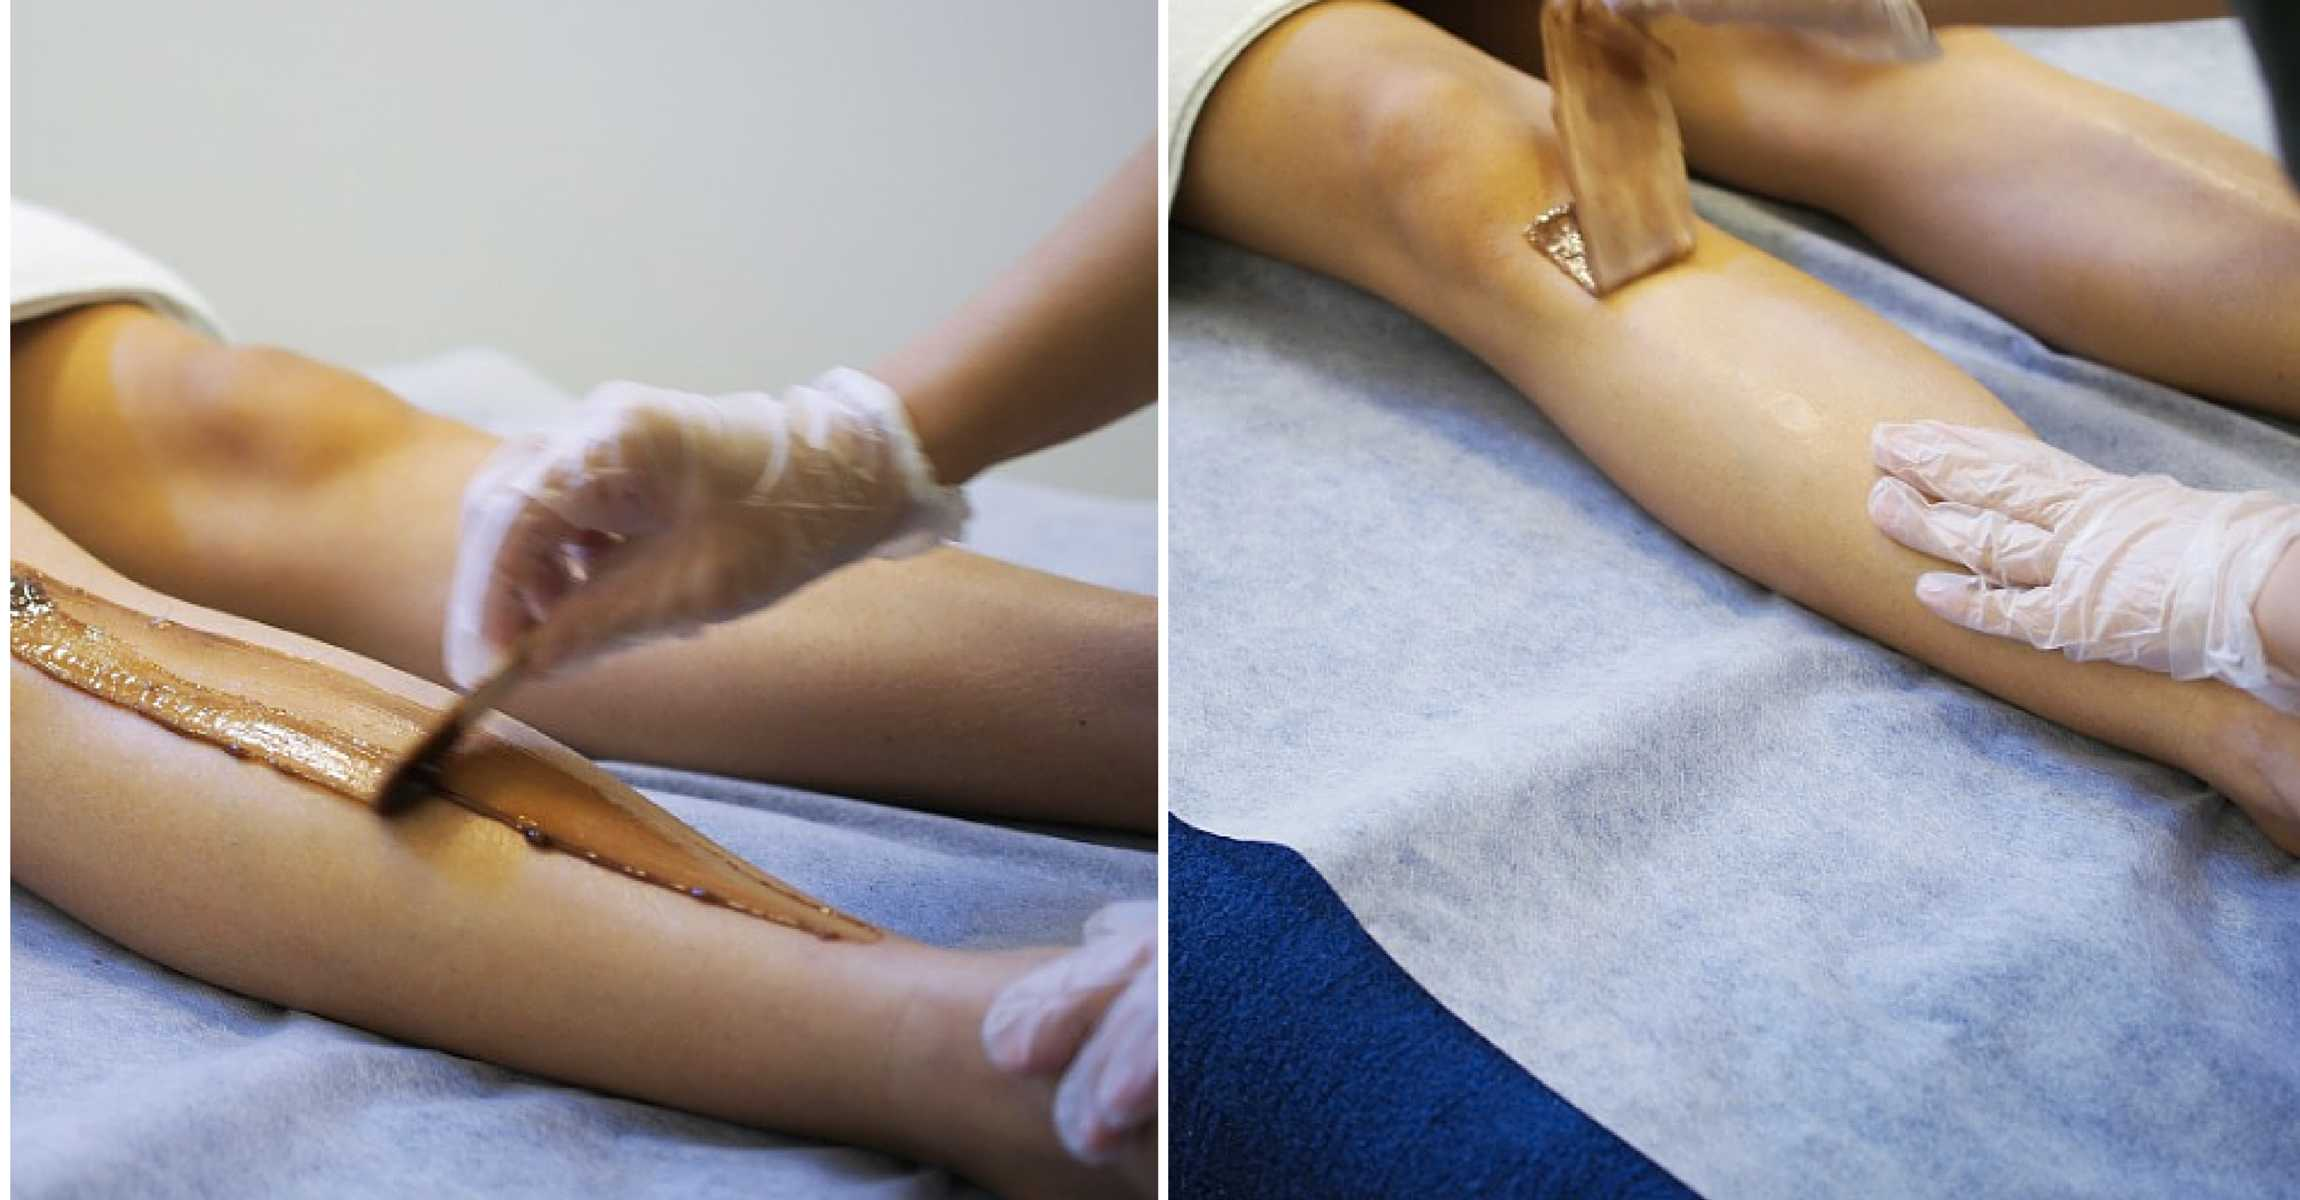 Is IPL or Laser Hair Removal not as effective in removing your hair as before? Agent GS tries out Depilar Hair Removal from SONA Japanese Skin Studio!